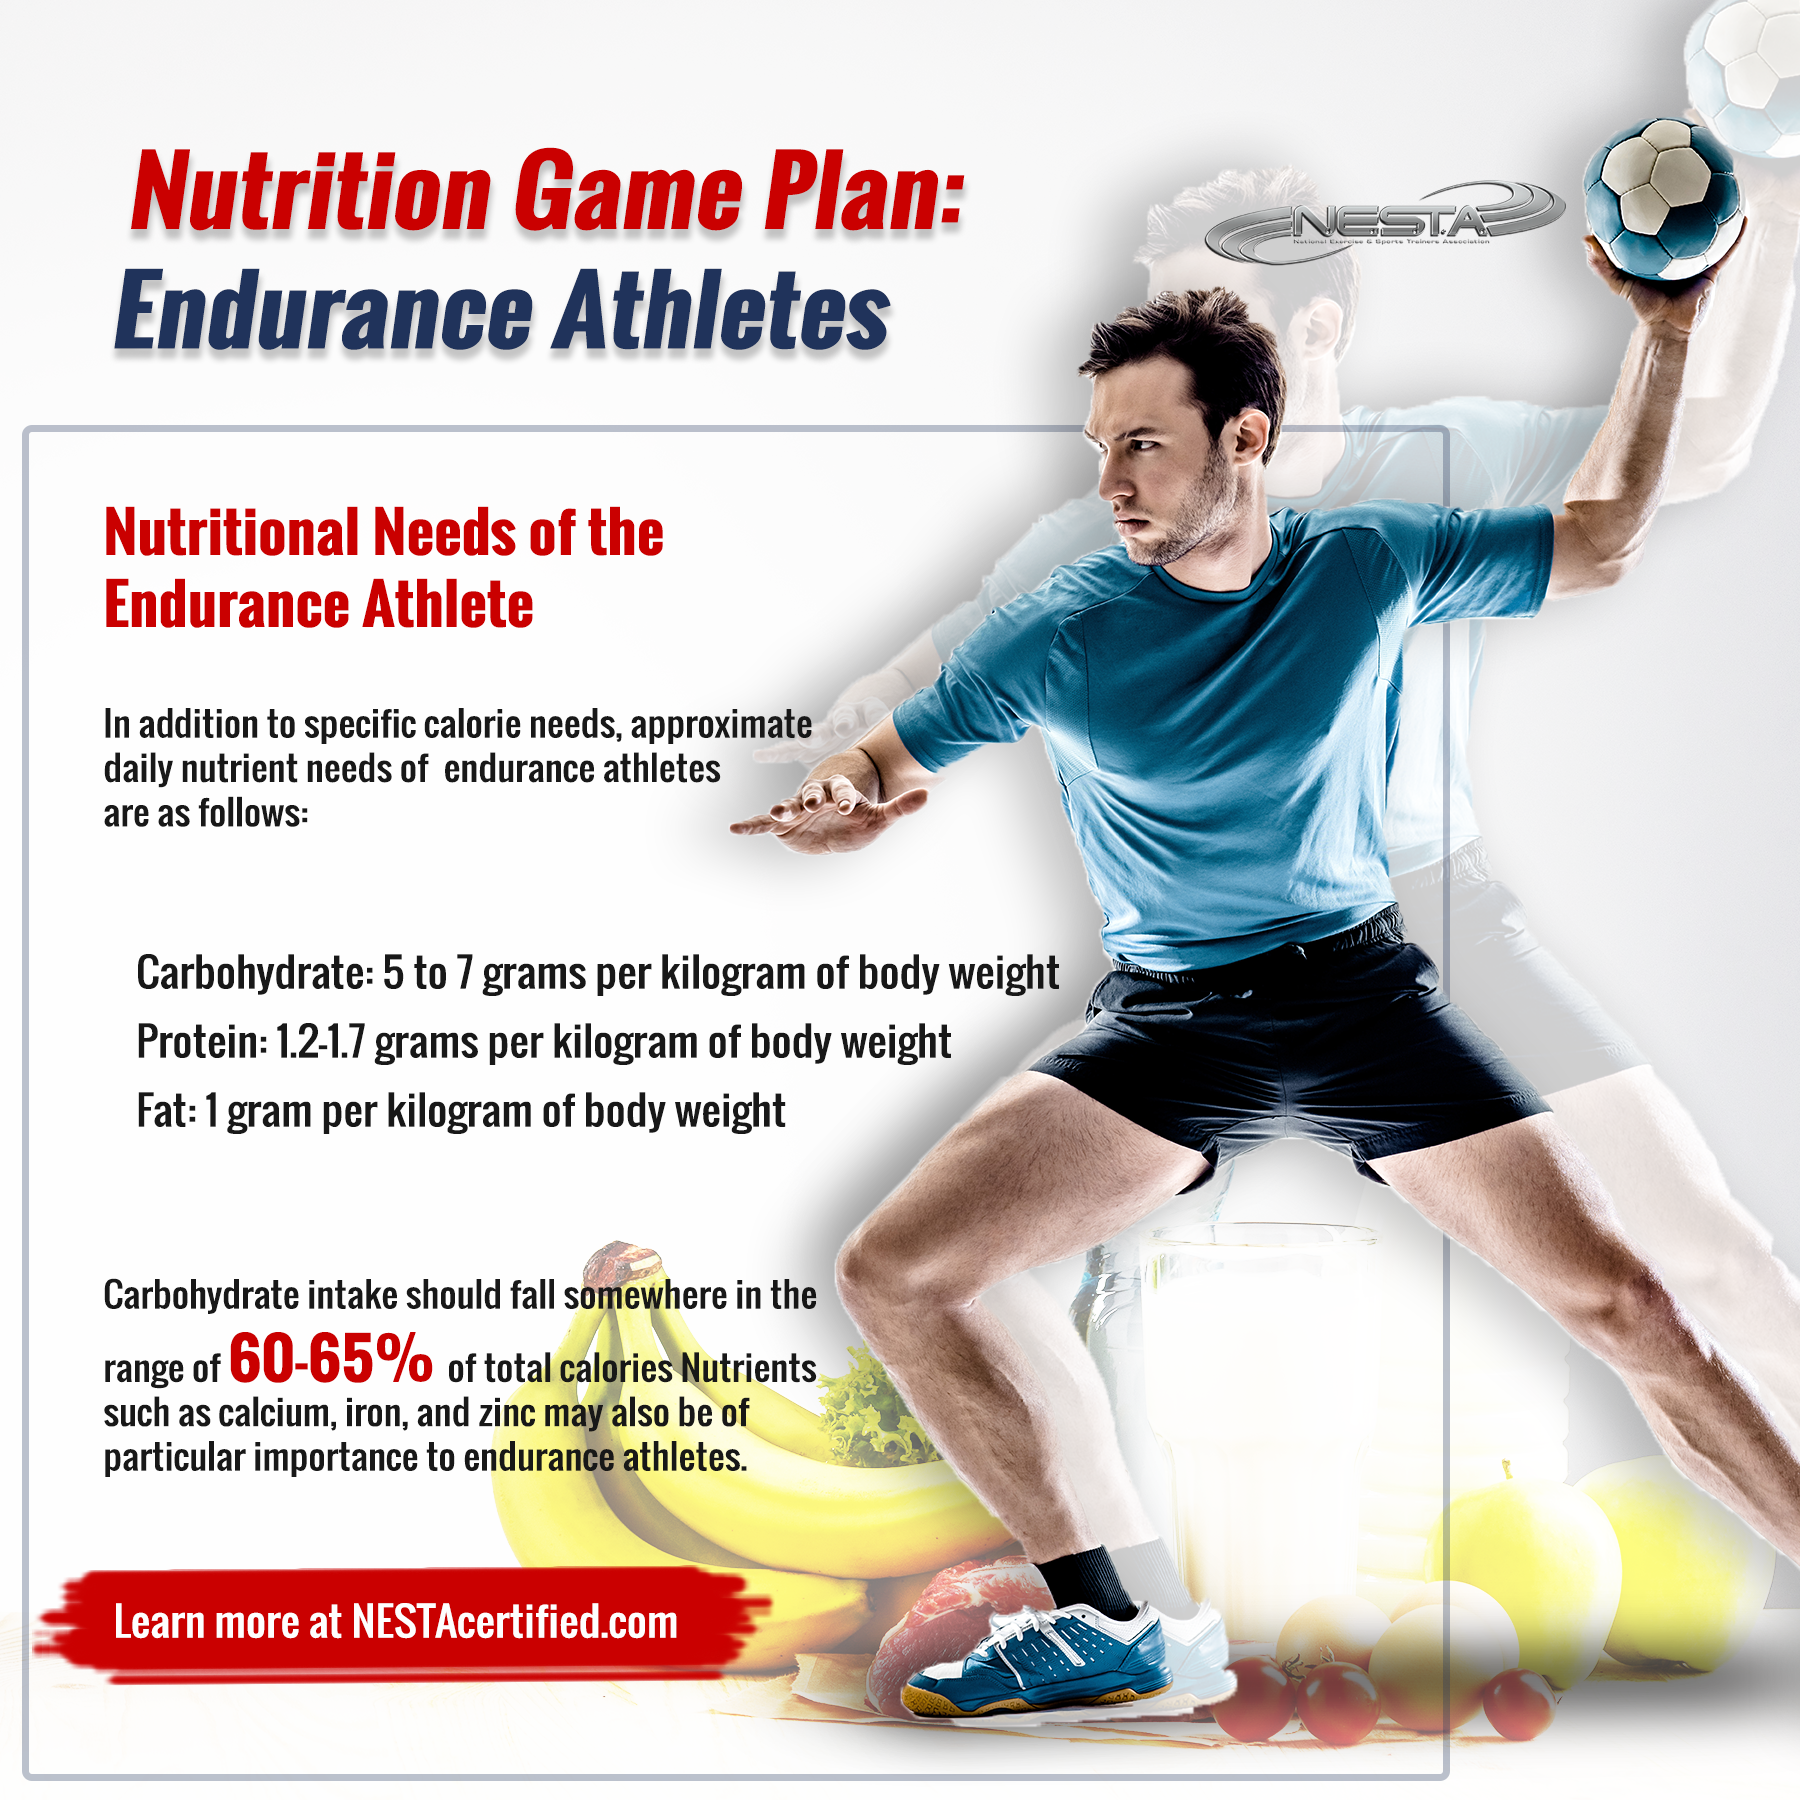 Nutritional Needs of the Endurance Athlete #athletenutrition Carbohydrate intake should fall somewhe...